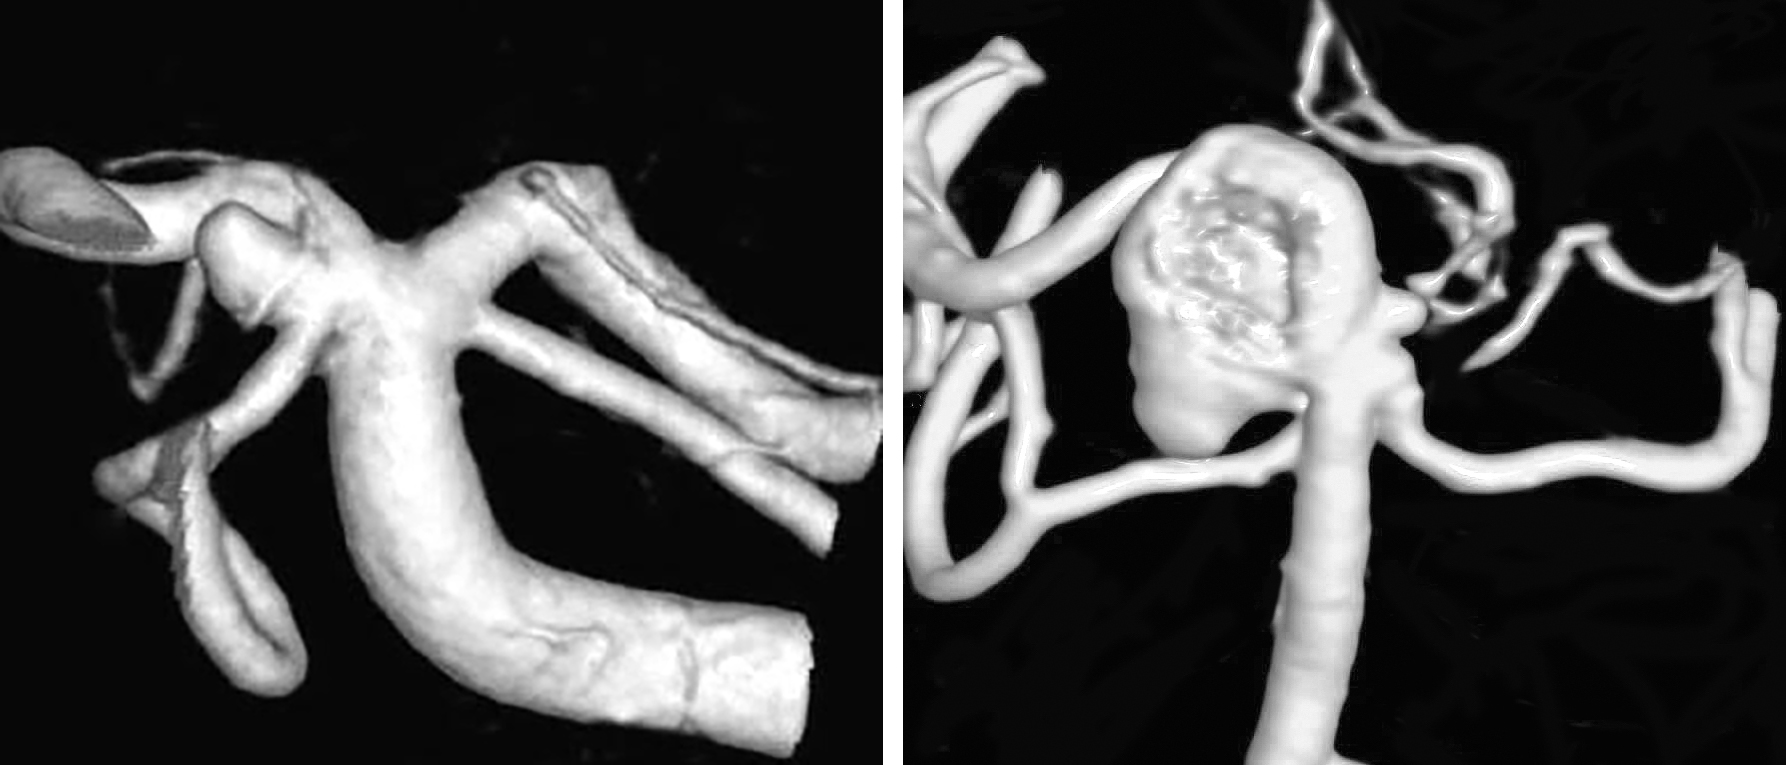 Figure 1: A classic SCA aneurysm is demonstrated (left). Note the relation of the neck to the origin of the SCA. Dysmorphic forms of this aneurysm are not uncommon (right).